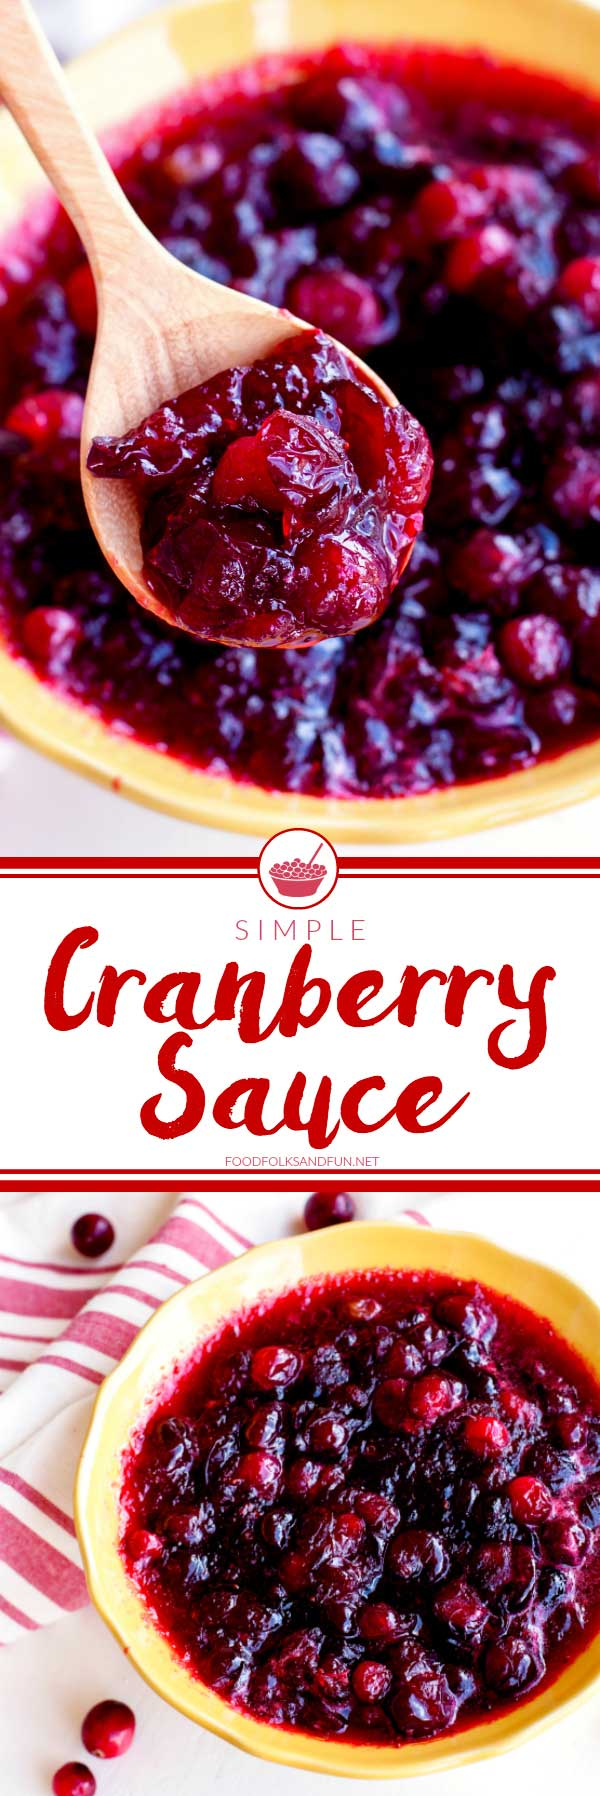 Picture collage of cranberry sauce.